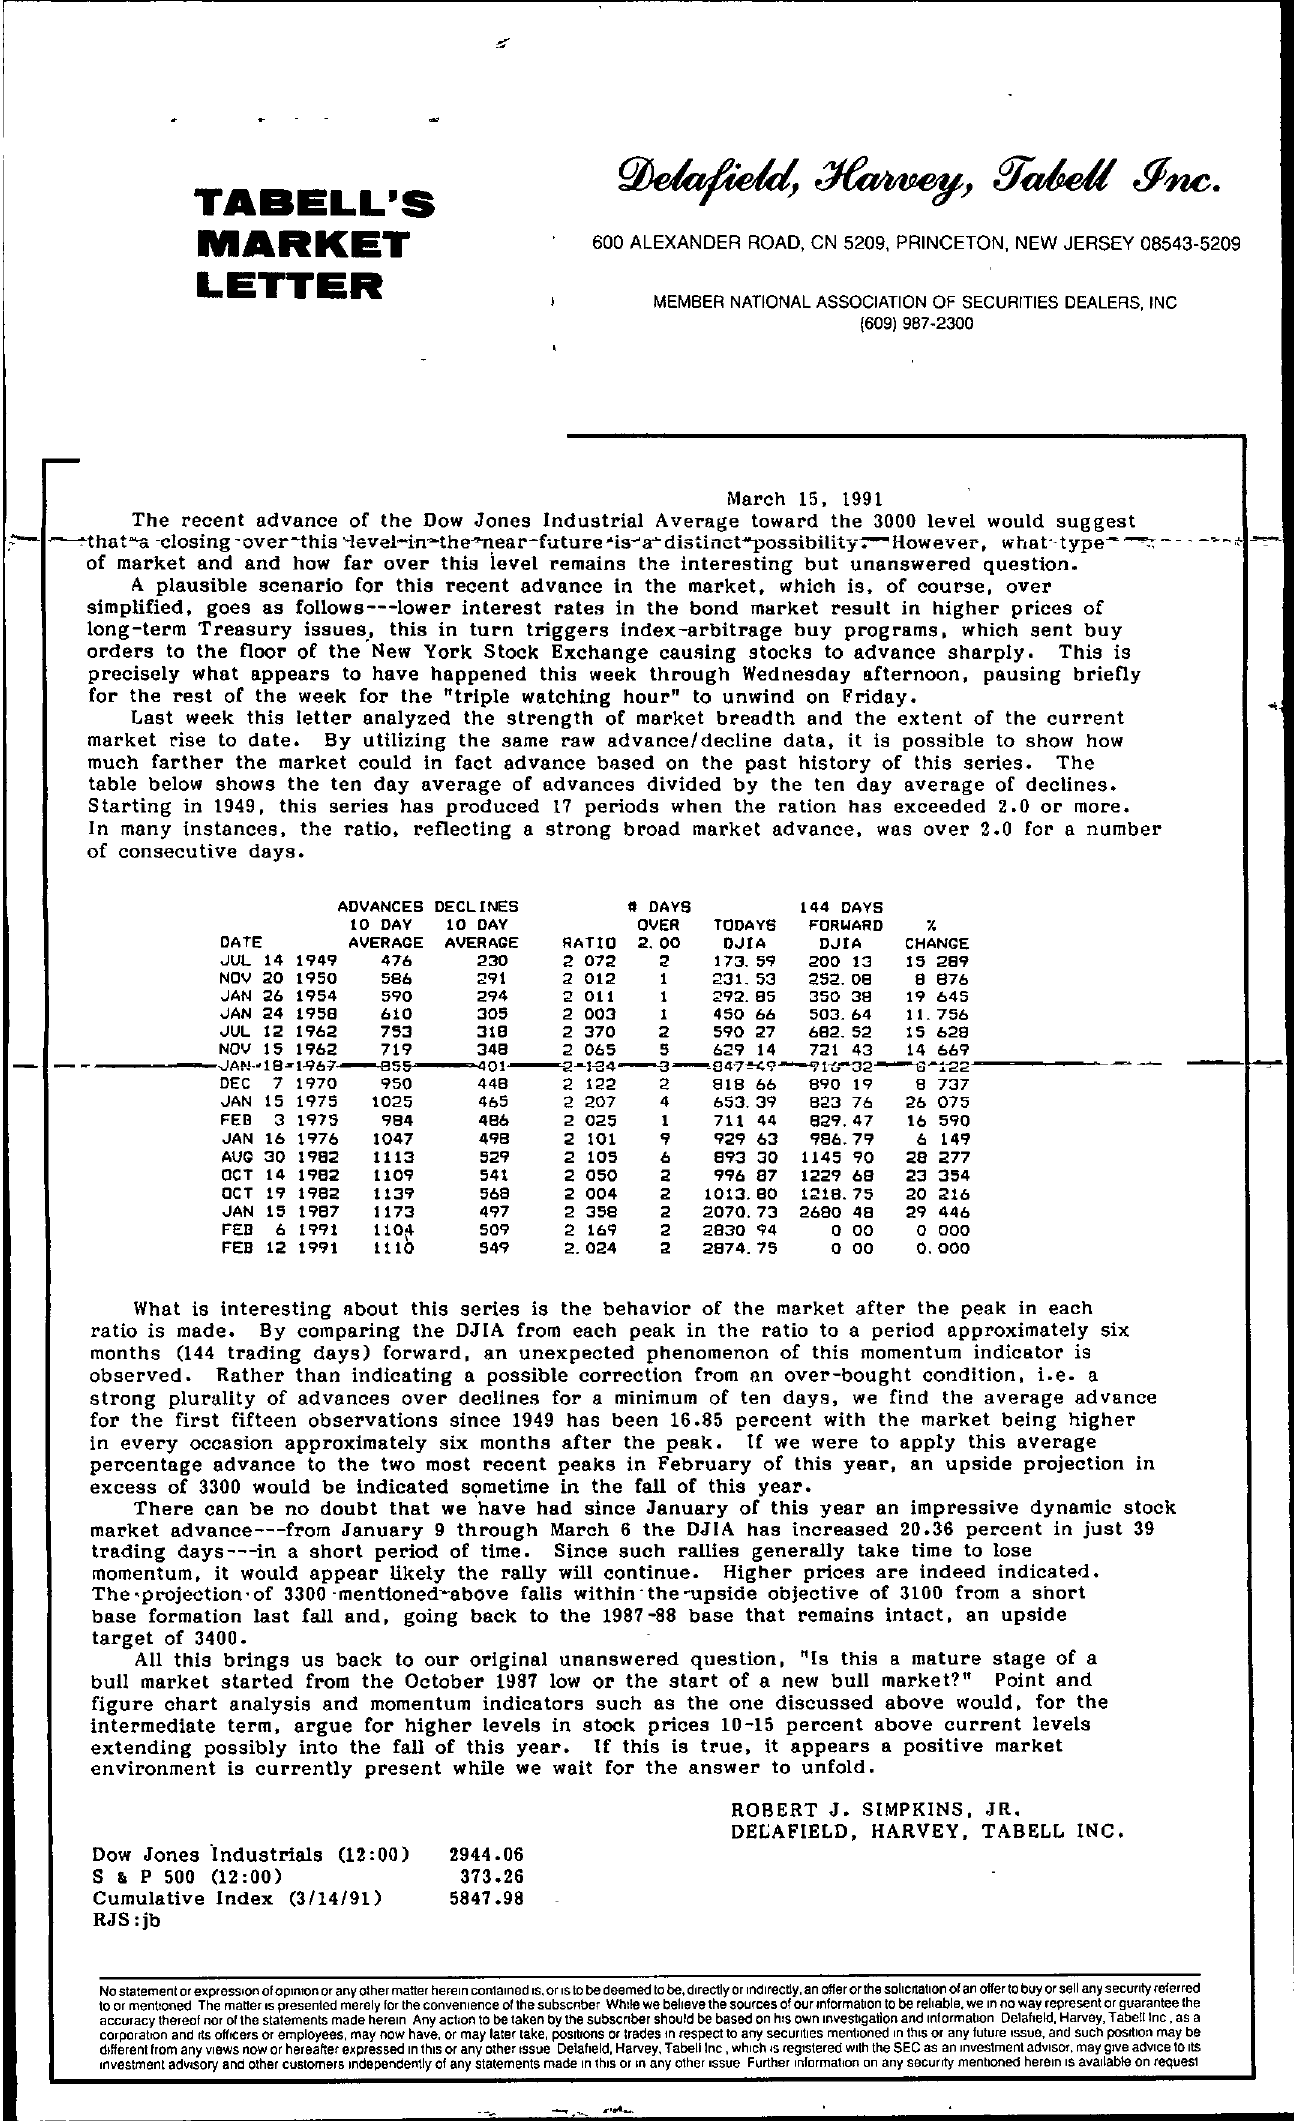 Tabell's Market Letter - March 15, 1991